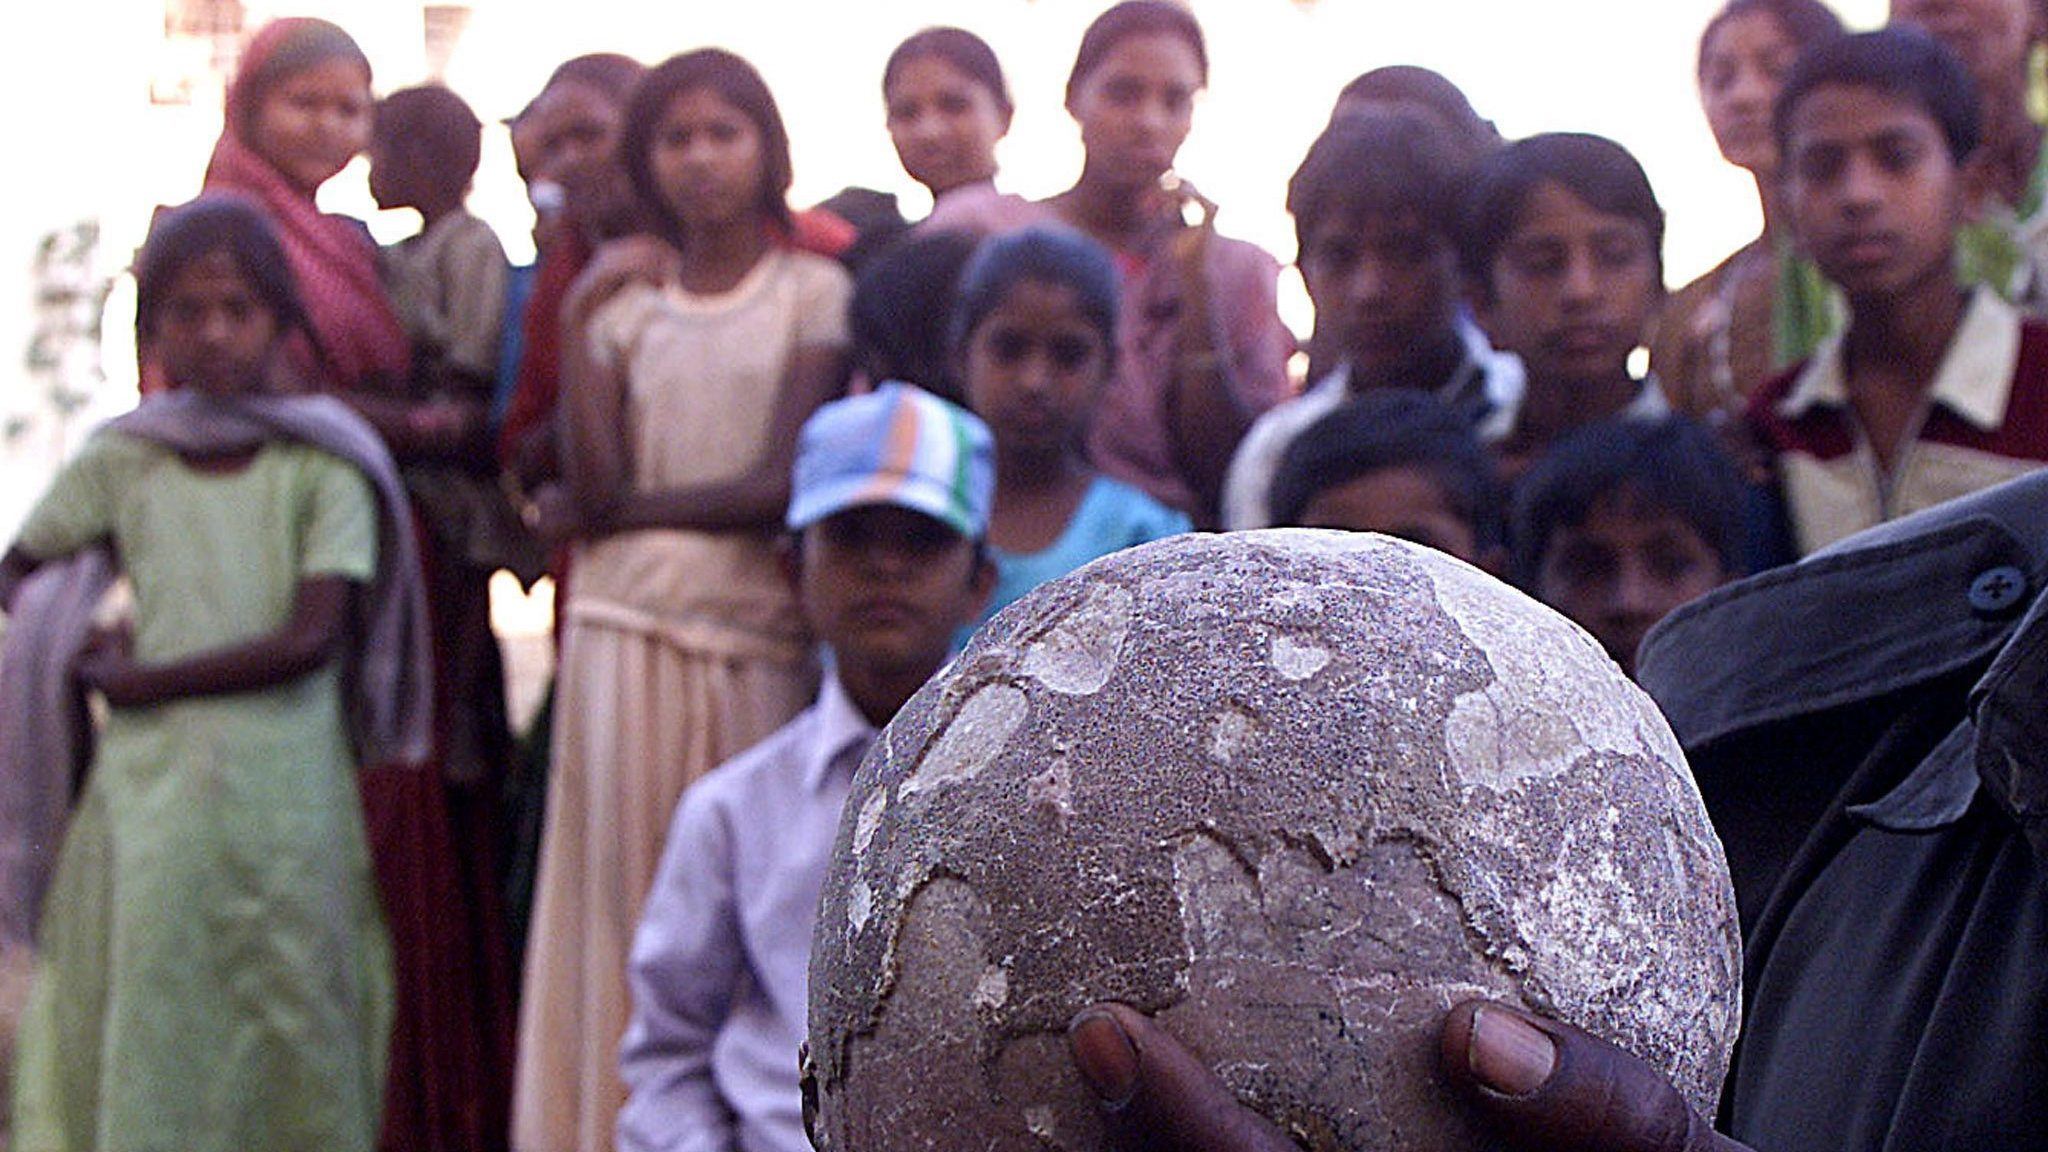 A government employee holds what he claims is a dinosaur's egg in the town of Balasinore in Gujarat state, India on 24 February 2004. The egg weighs about five kilograms and is believed to be at least 65 million years old. Such 'eggs' are commonly found in Balasinore. Last August a team of scientists from India and the United States found dinosaur fossils around the same area, and named it Rajasaurus Narmadenis which means the princely reptile from the Narmada river.